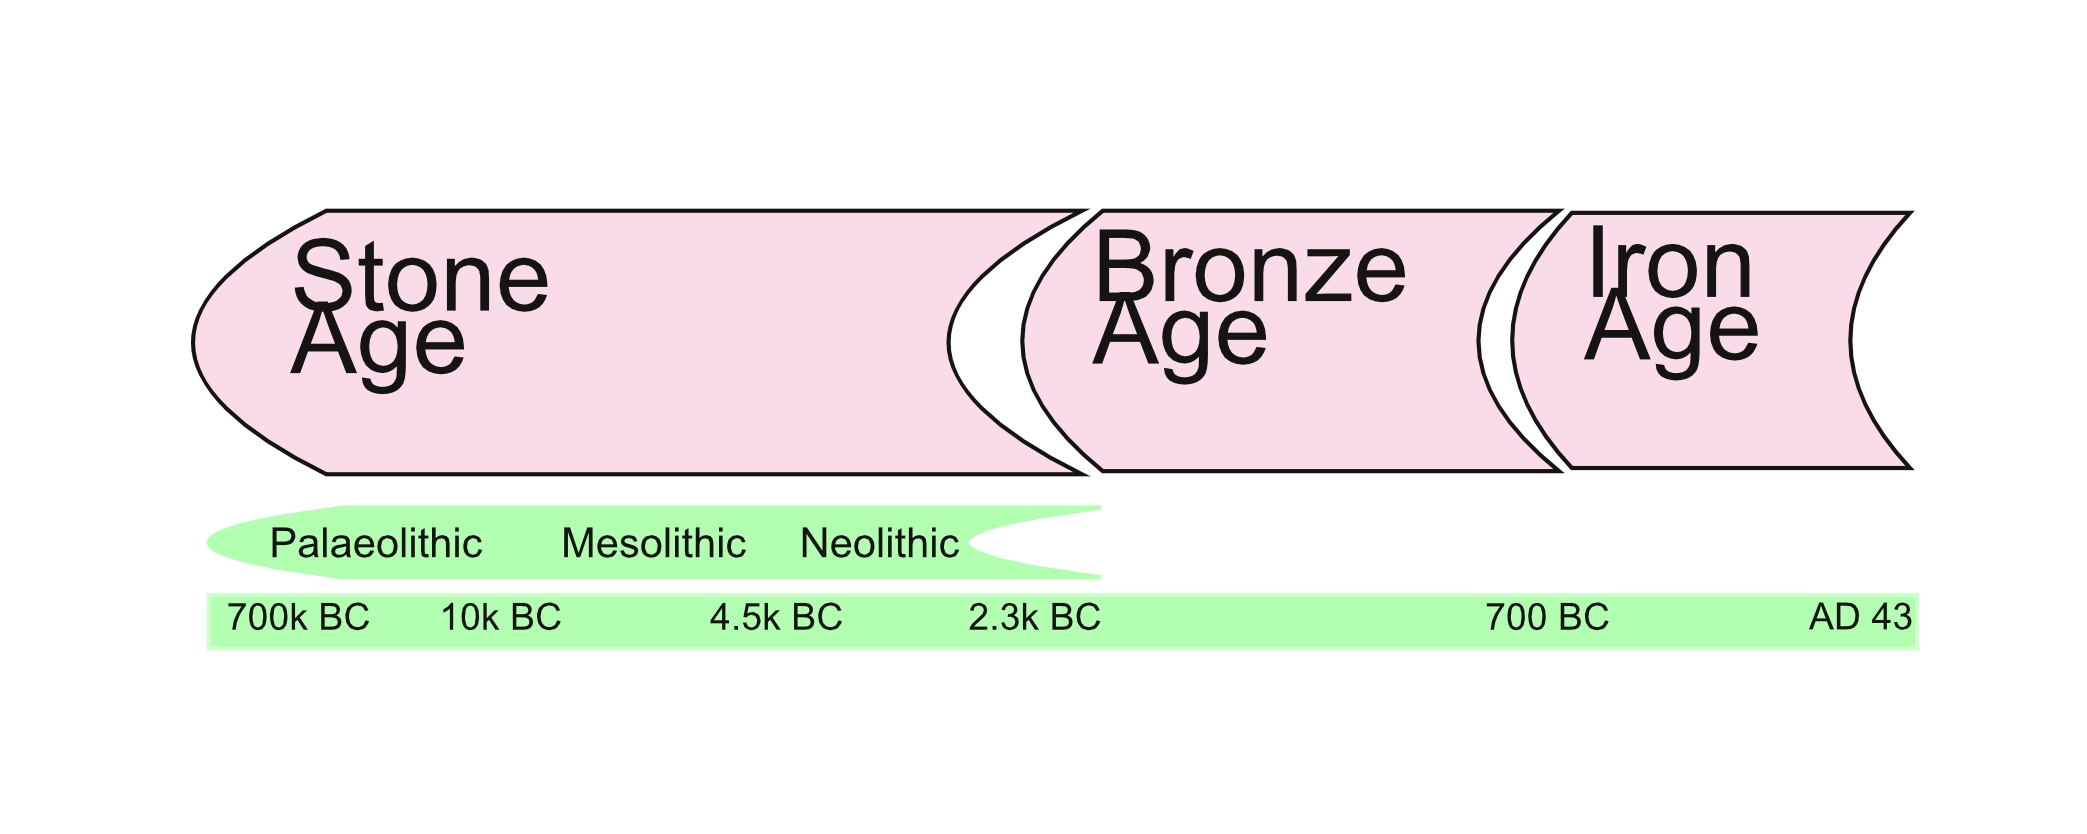 Why Prehistory Why Not Stone Age Bronze Age Iron Age